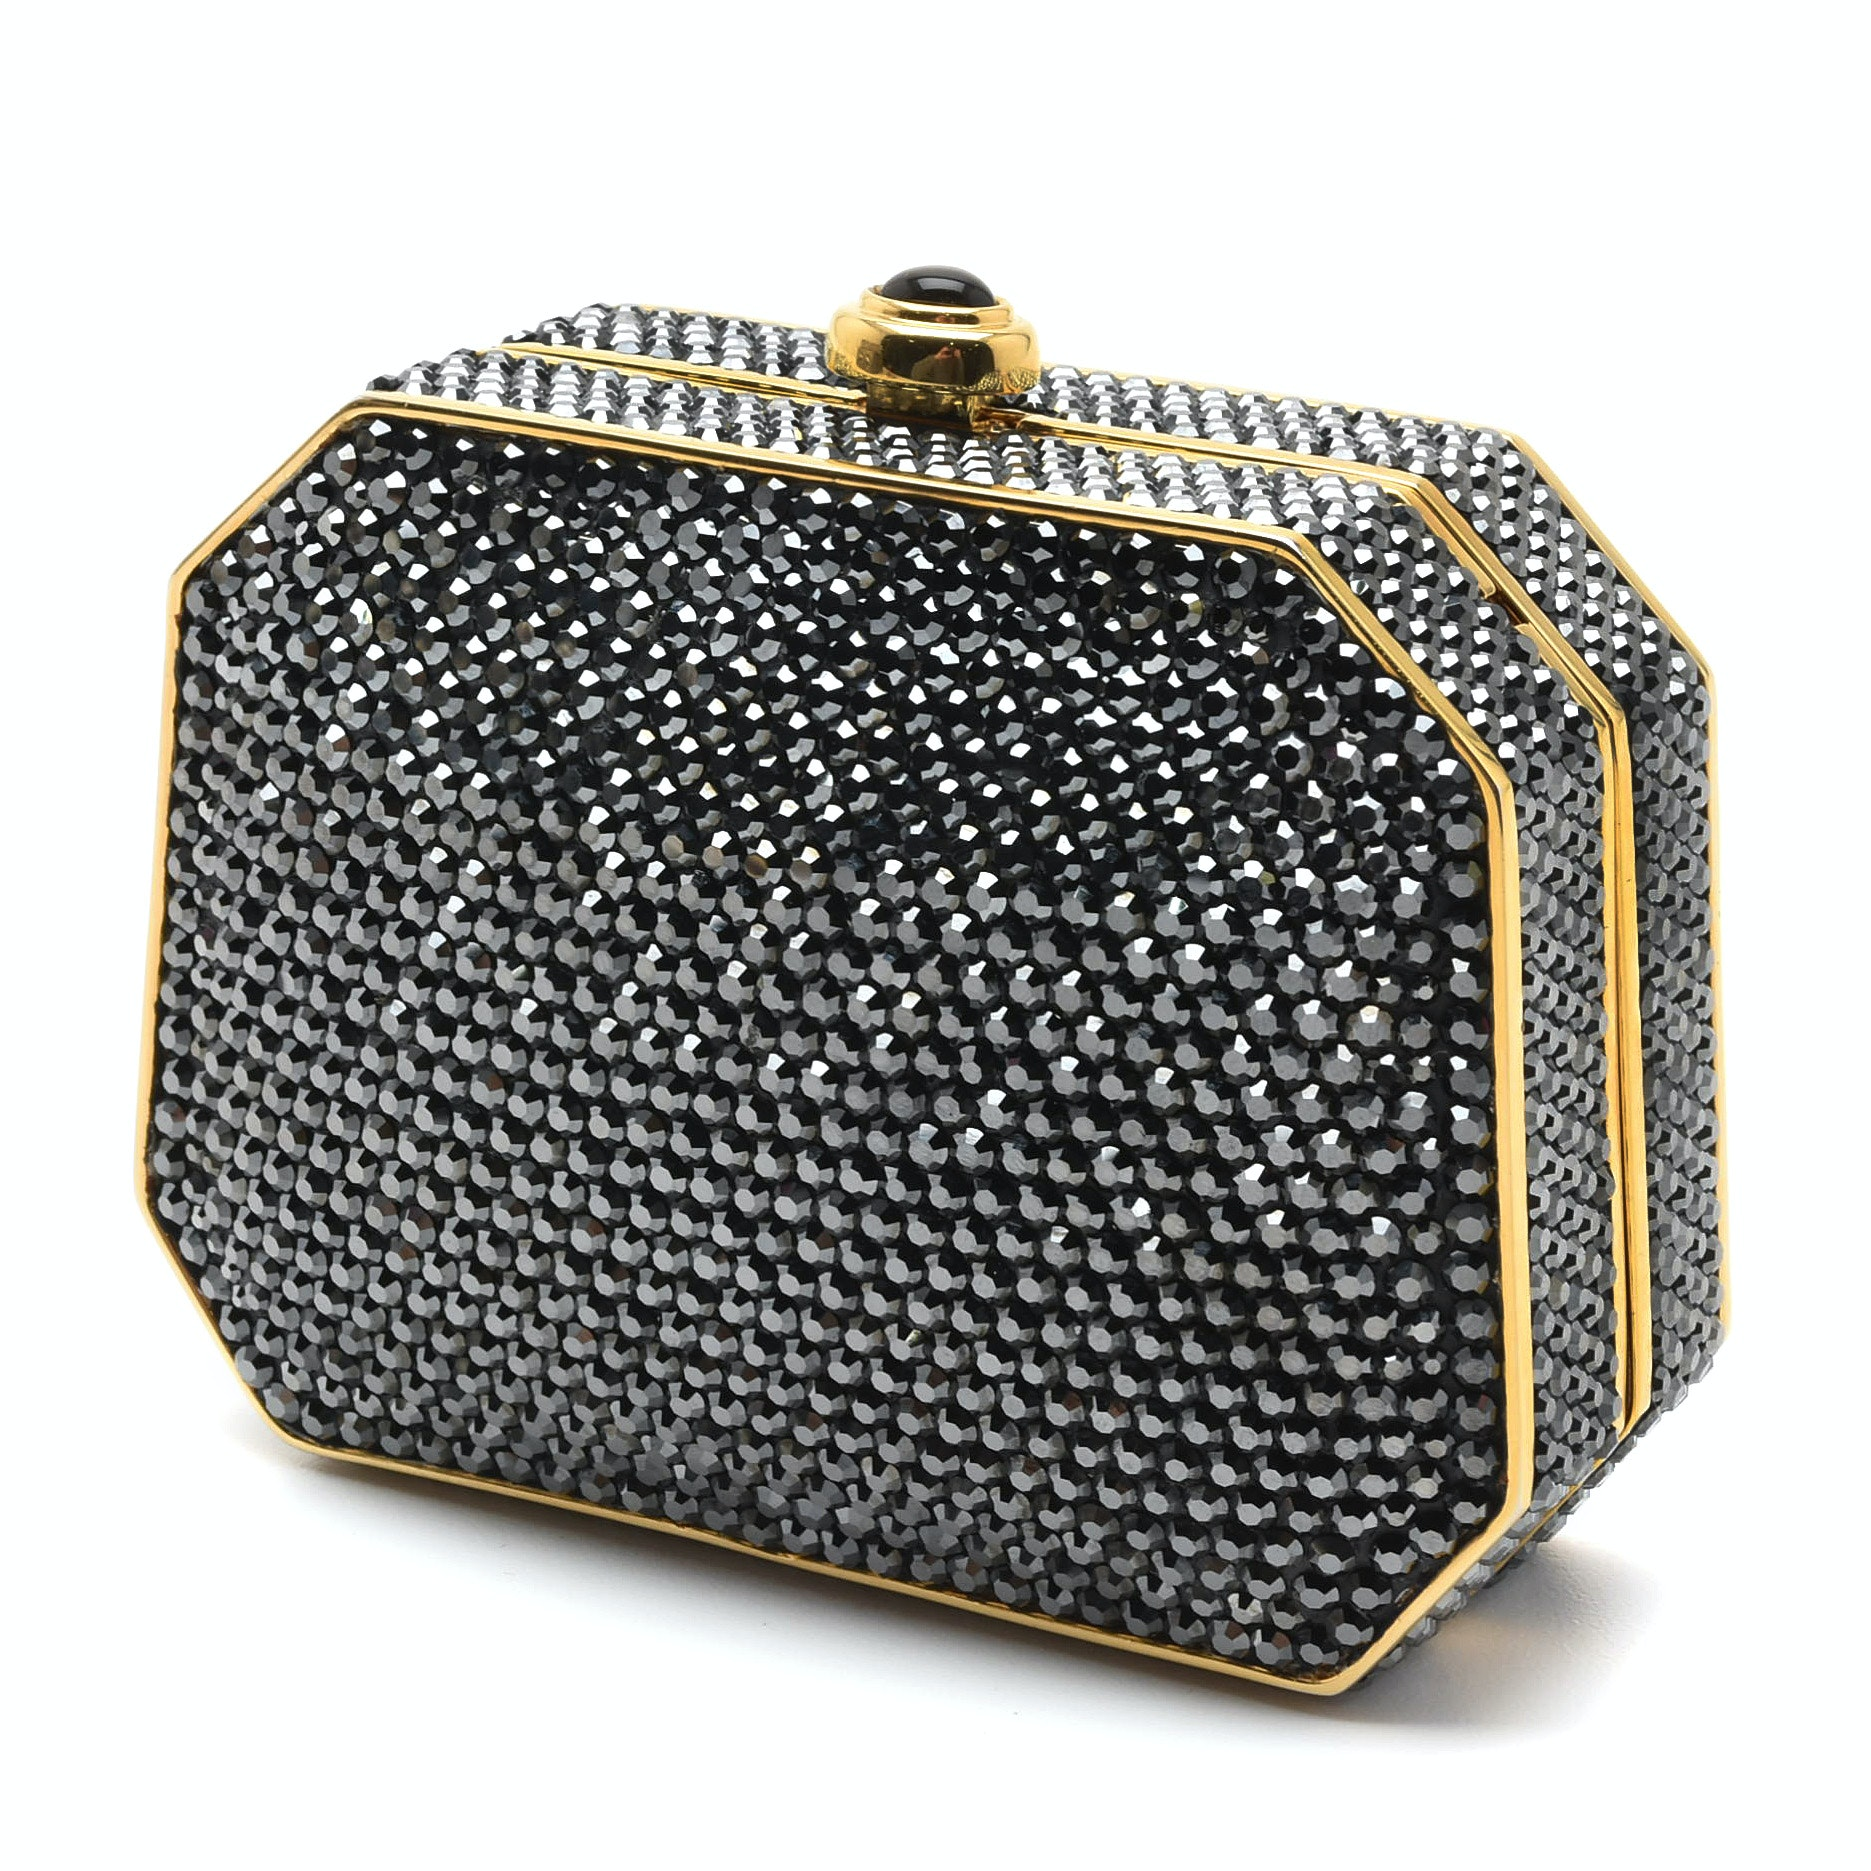 Judith Leiber Black Swarovski Crystal Minaudière Evening Bag with Accoutrements